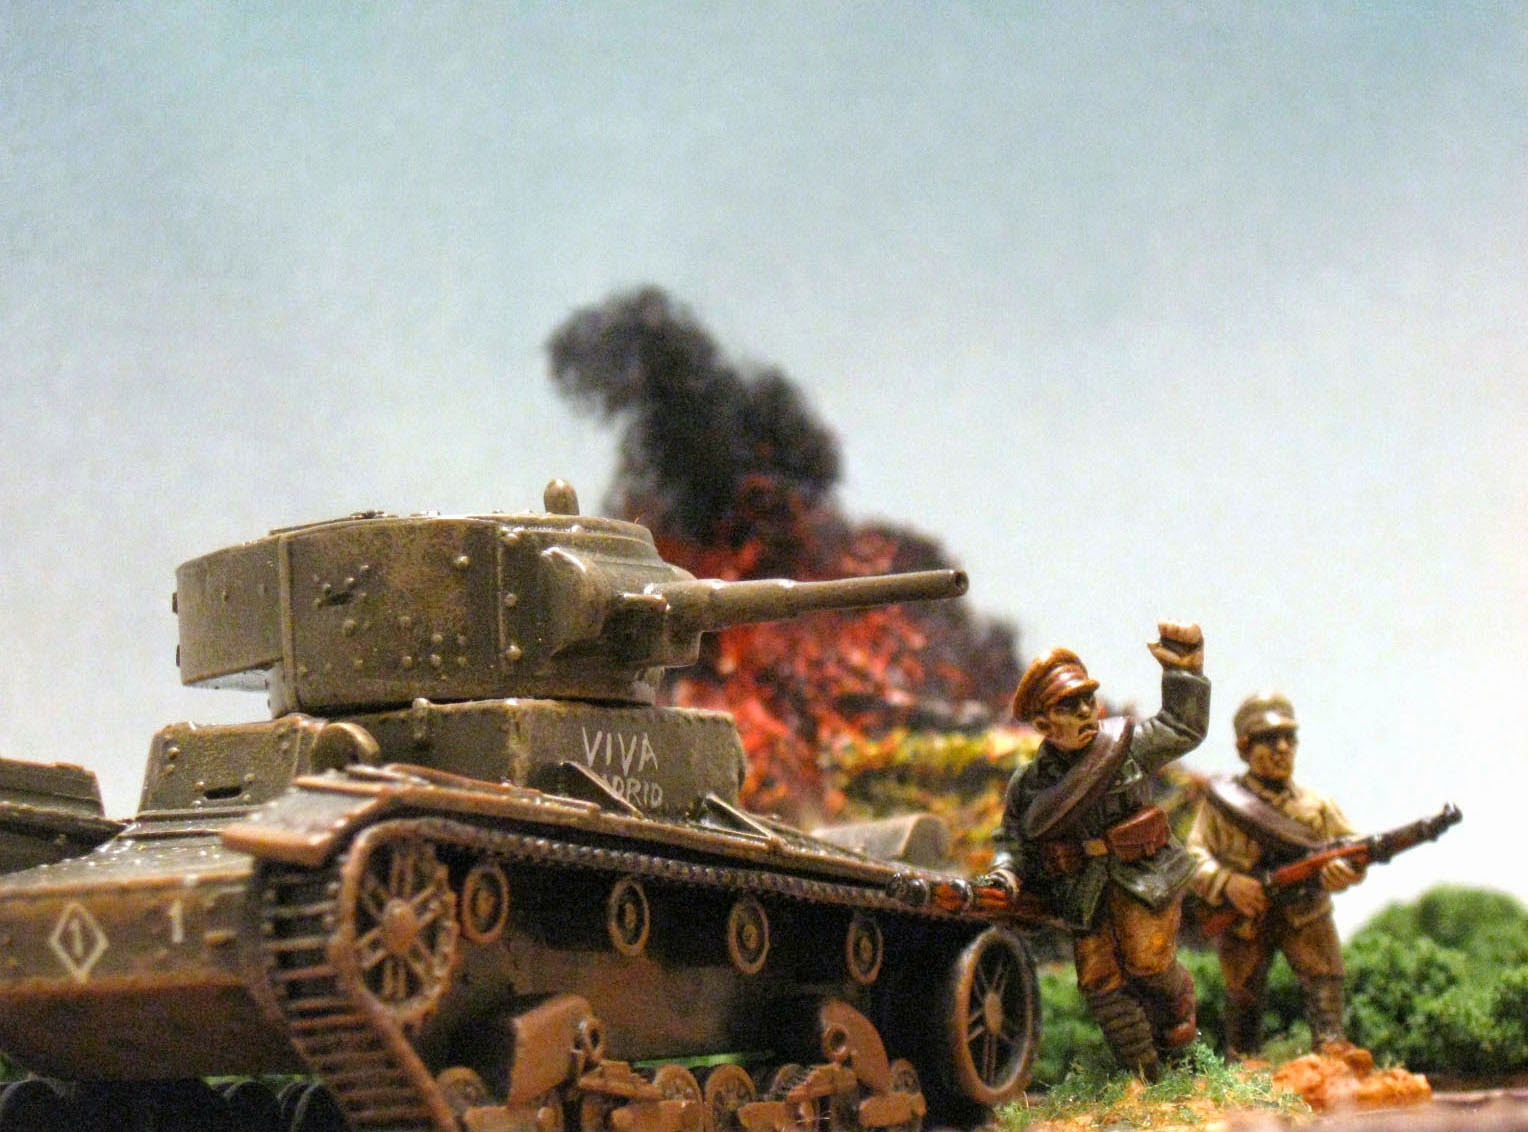 The Spanish Civil War In 28mm